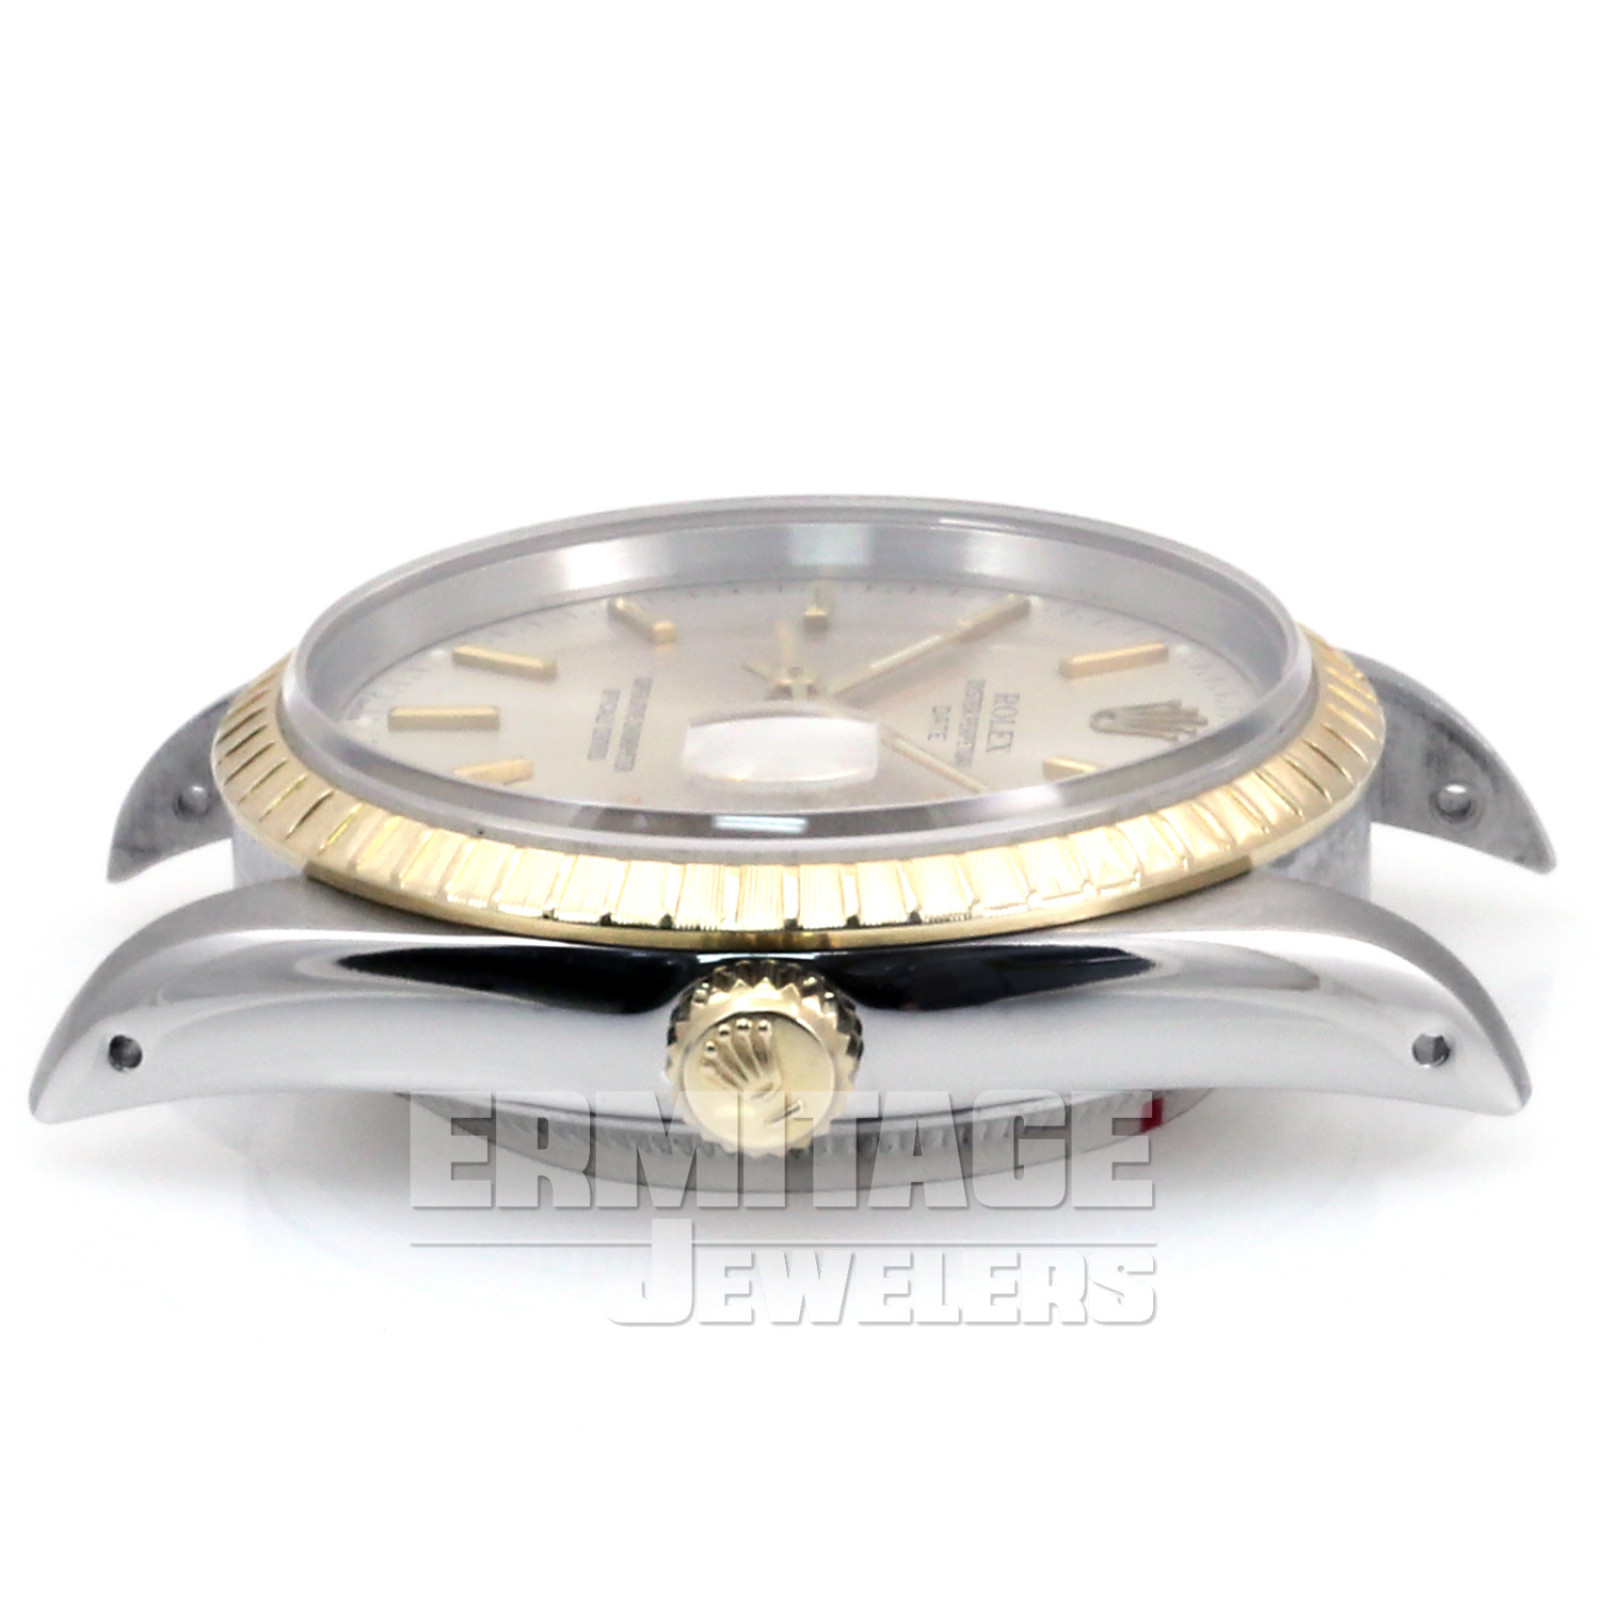 Pre-Owned Rolex Date 15223 with Steel Dial